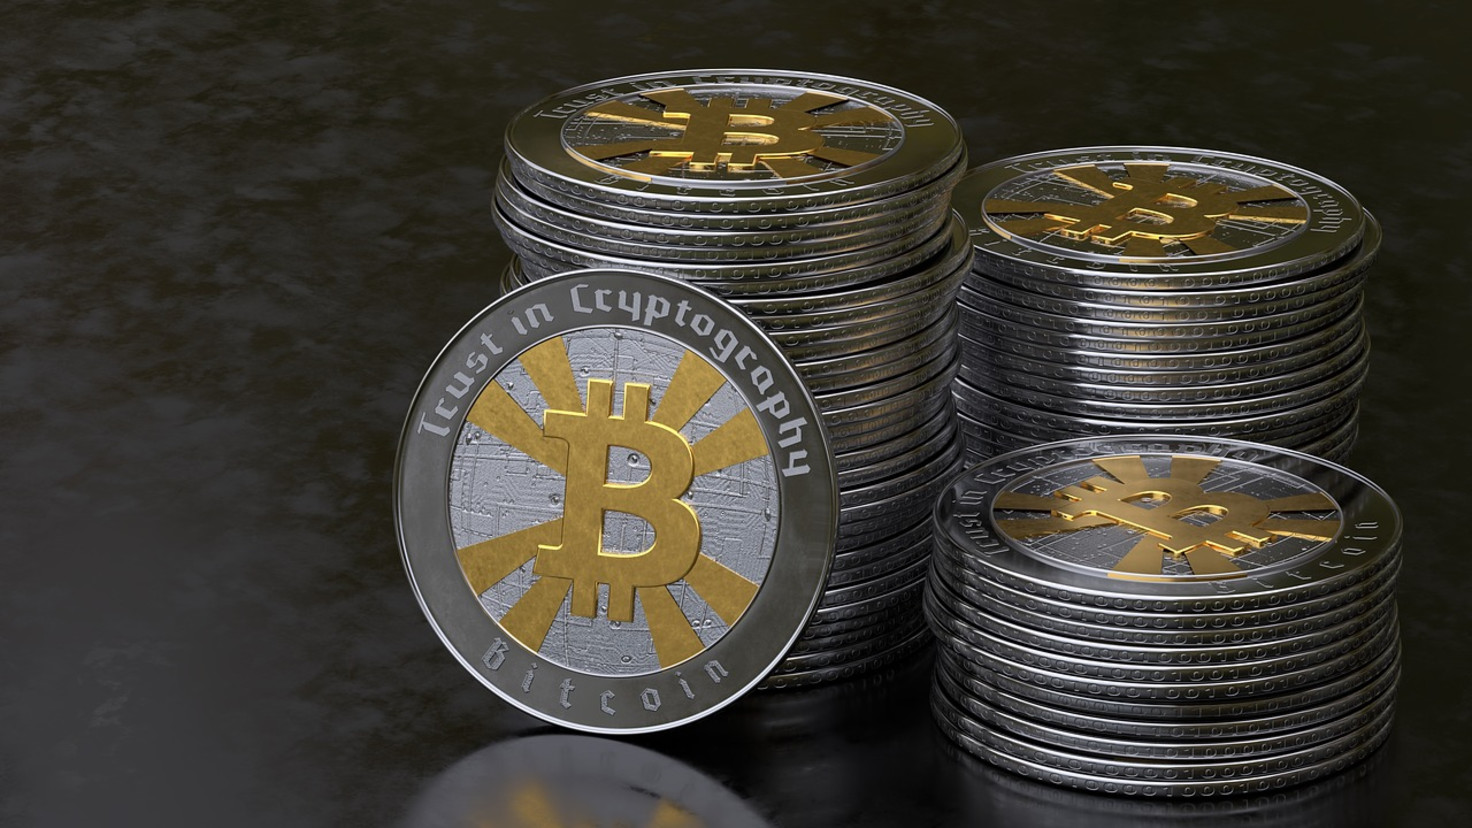 Bitcoin price gains over 5% to reach three-month high | Currency.com